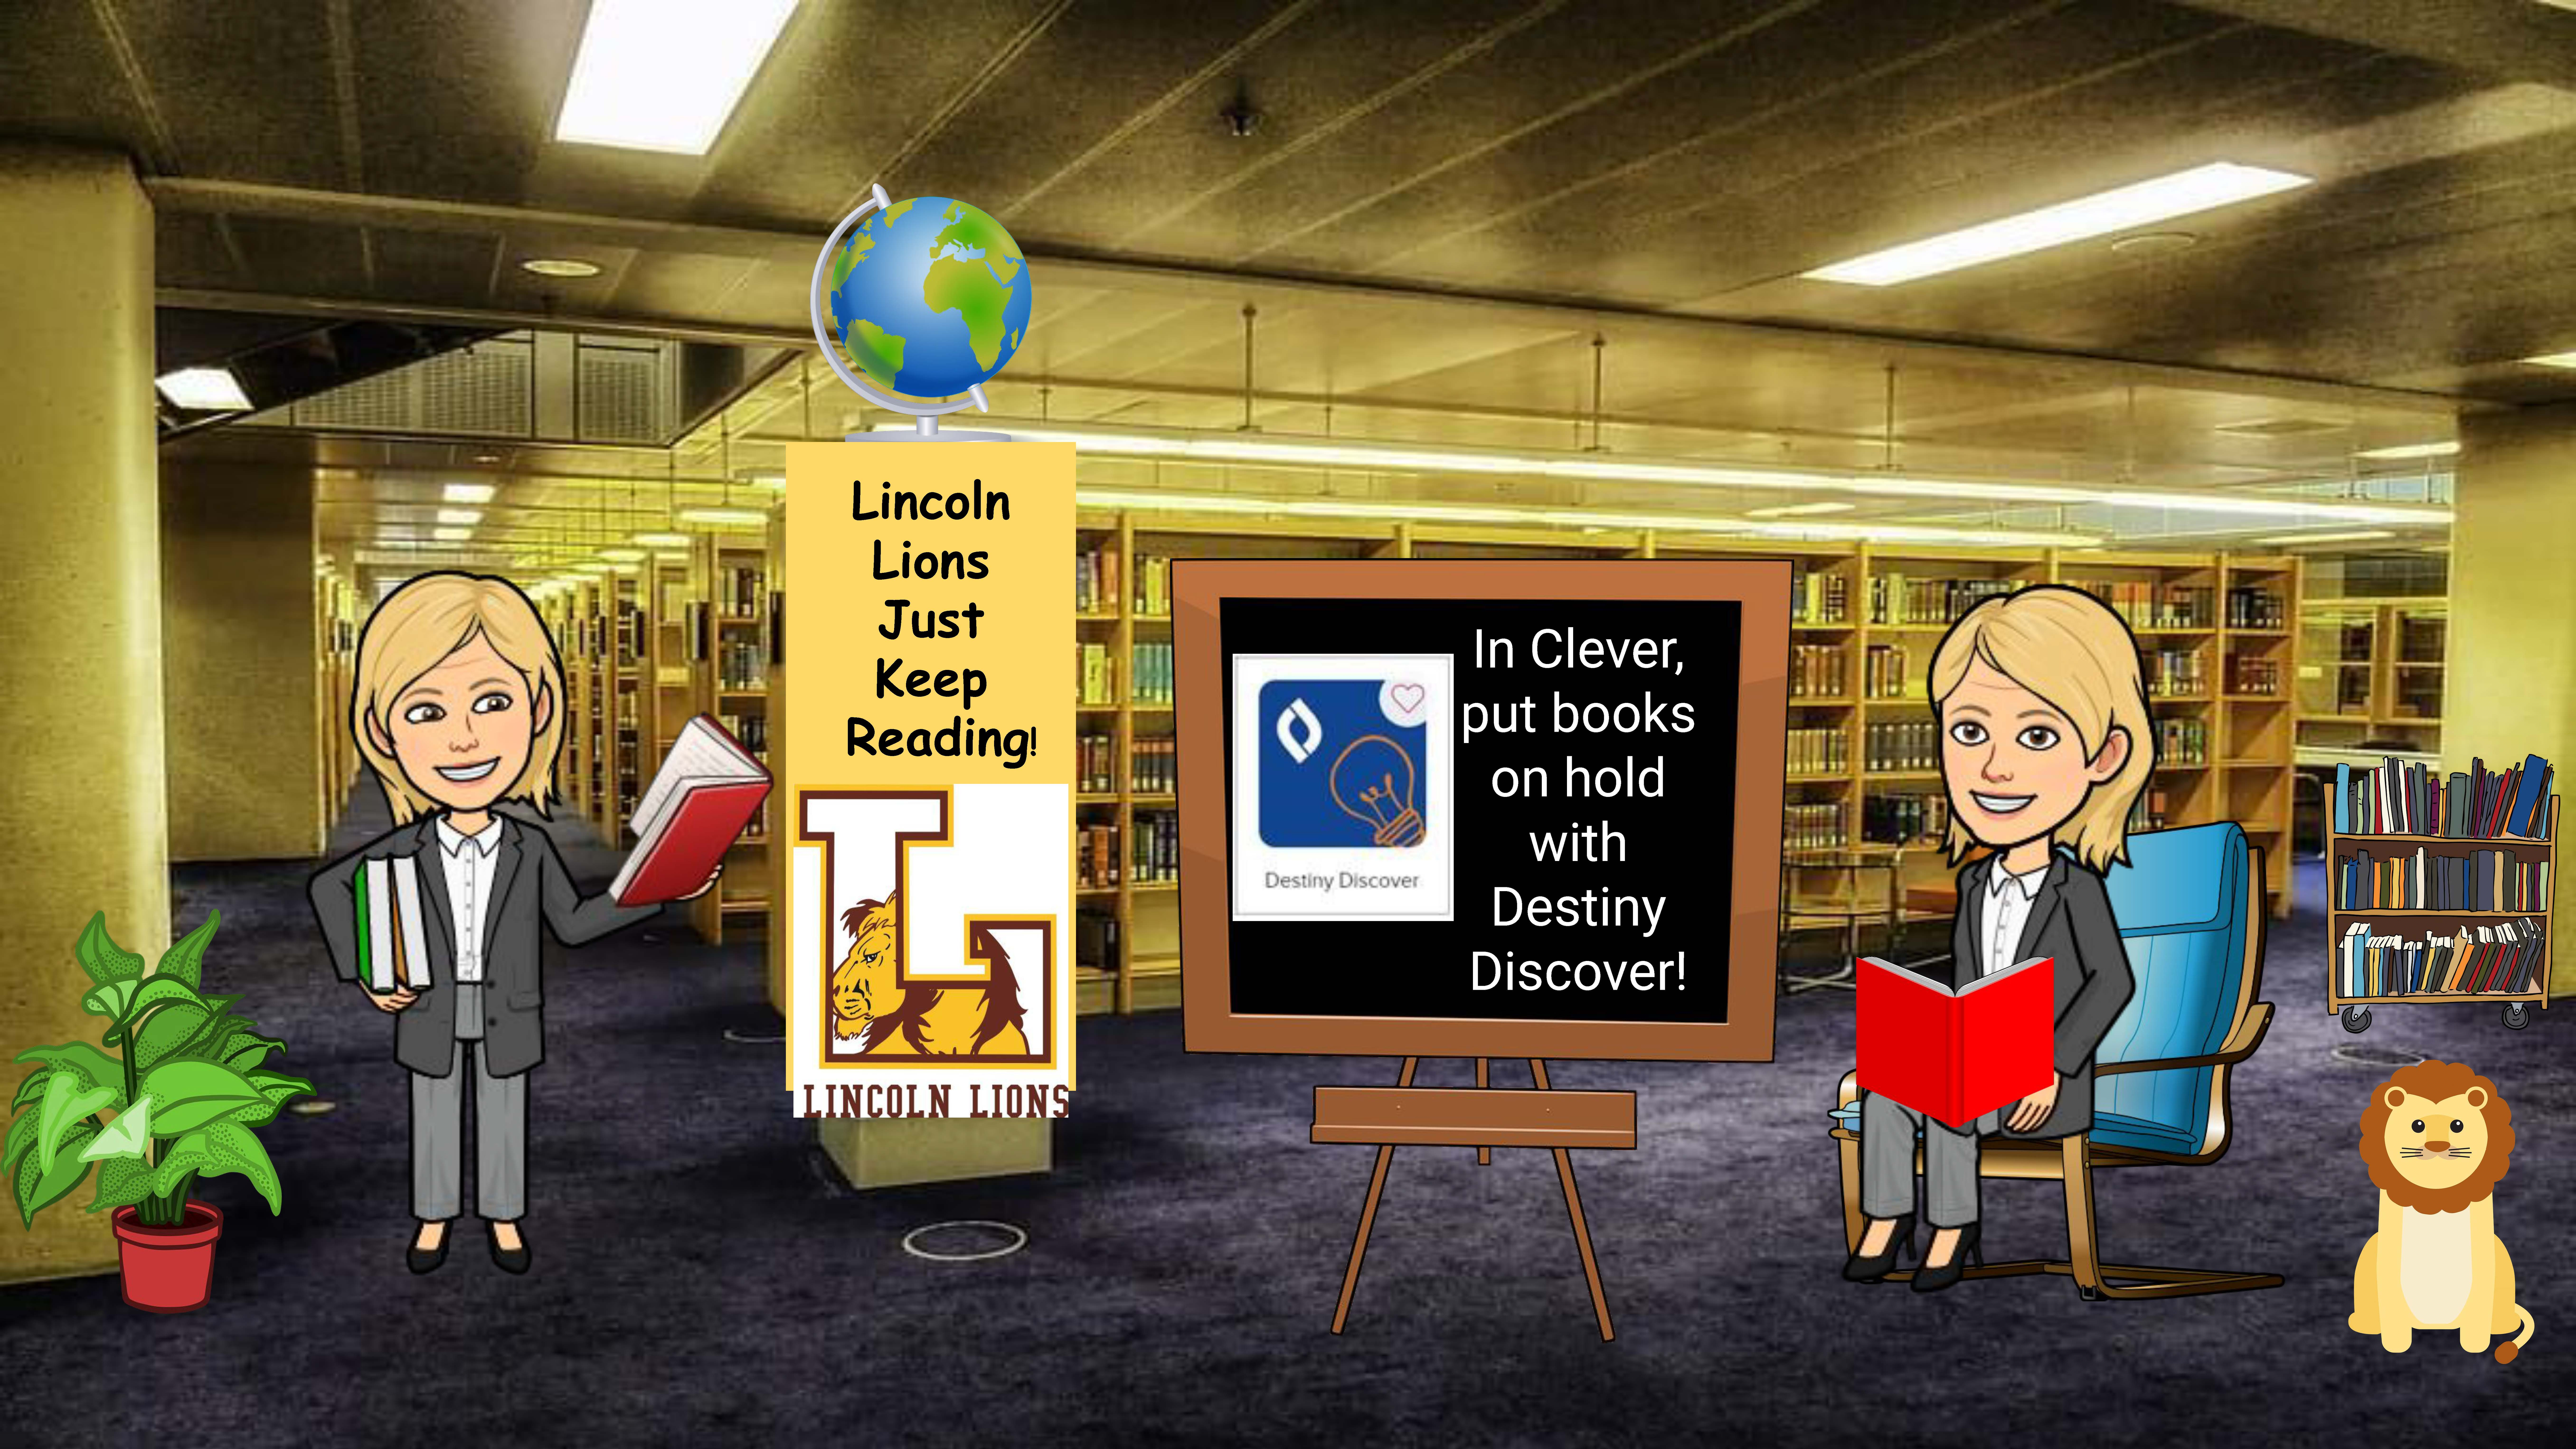 picture of bitmoji librarian in the Lincoln library